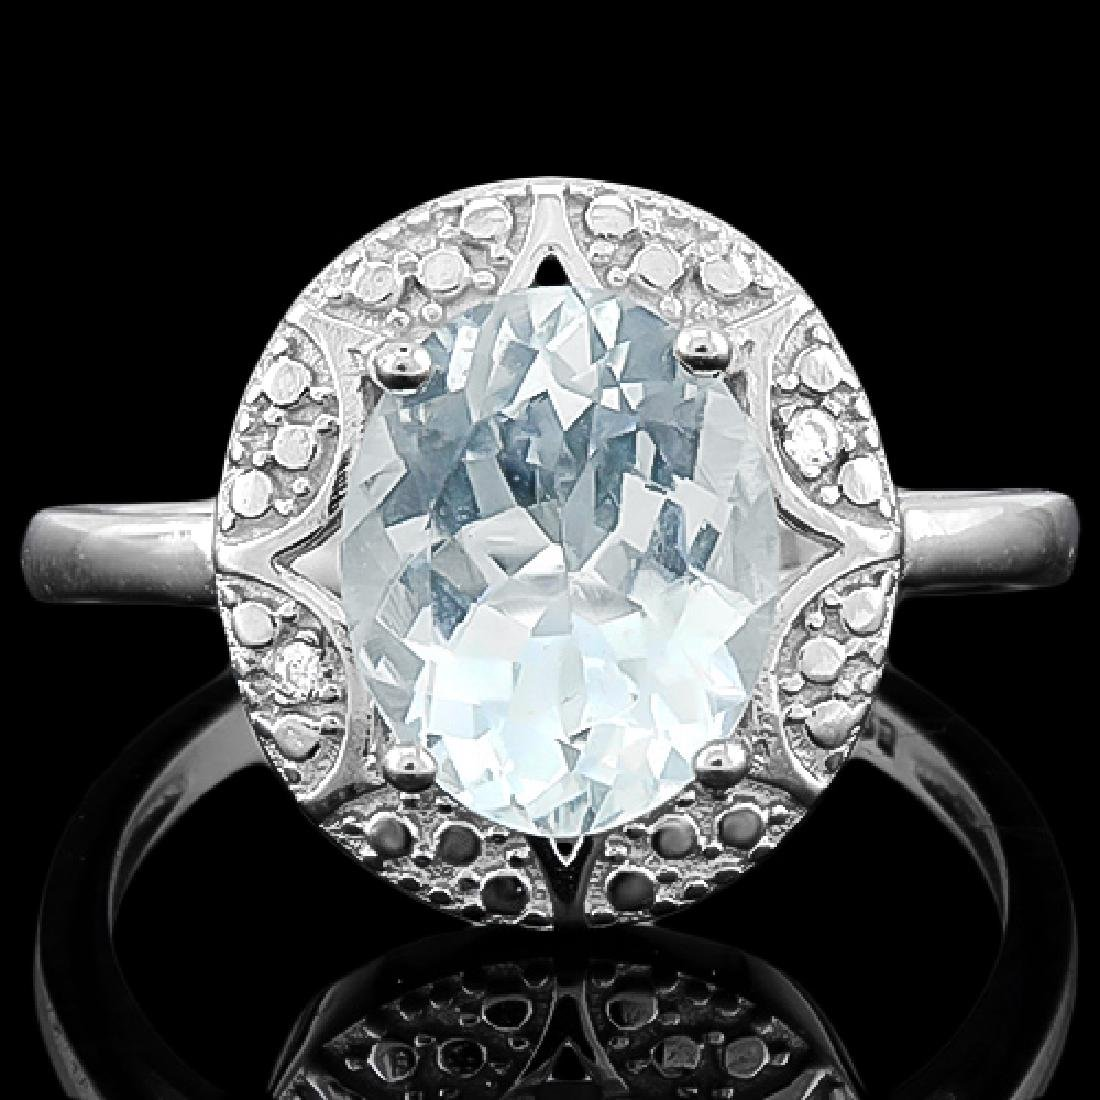 2 1/3 CARAT AQUAMARINE & DIAMOND 925 STERLING SILVER RI